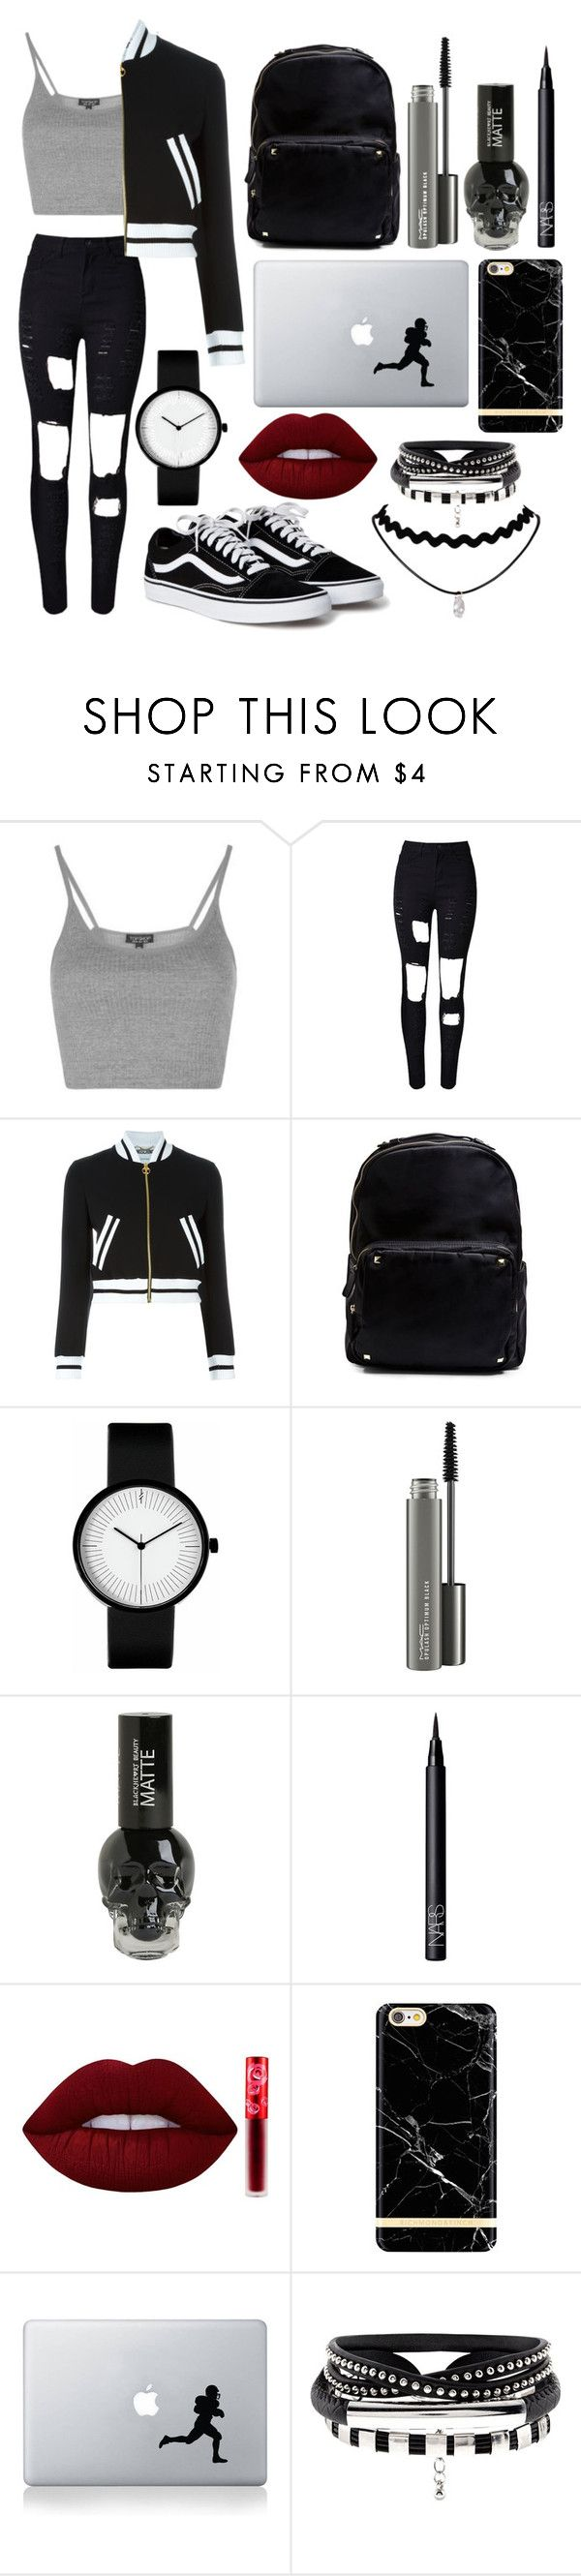 """""""Untitled #96"""" by chica1622 ❤ liked on Polyvore featuring Topshop, WithChic, Moschino, Madden Girl, MAC Cosmetics, NARS Cosmetics, Lime Crime, Richmond & Finch and Vinyl Revolution"""